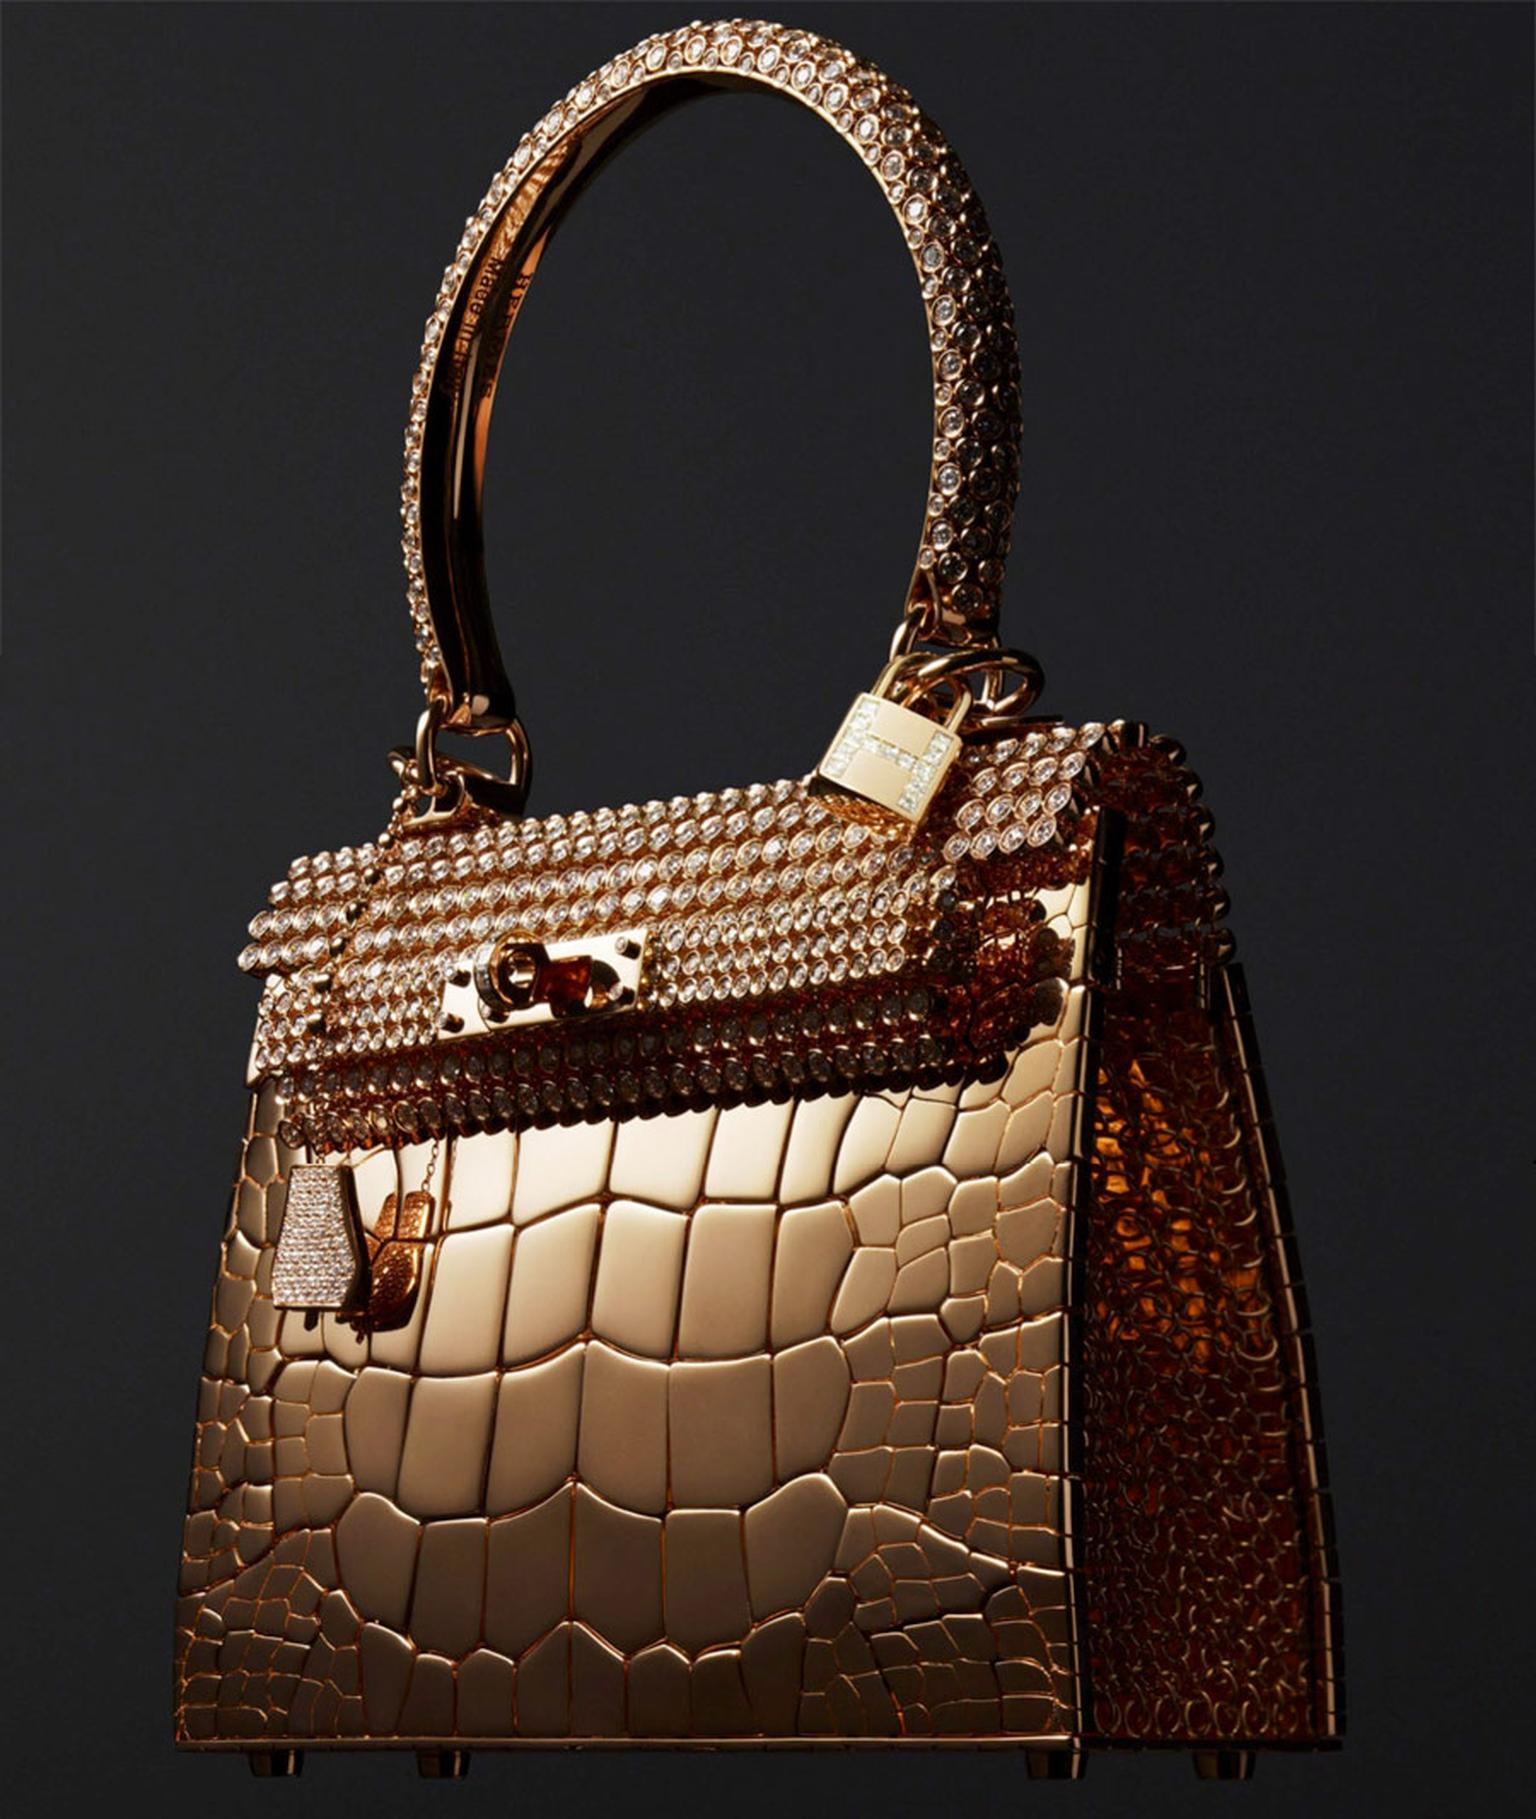 Hermes-Kelly-Bag.jpg